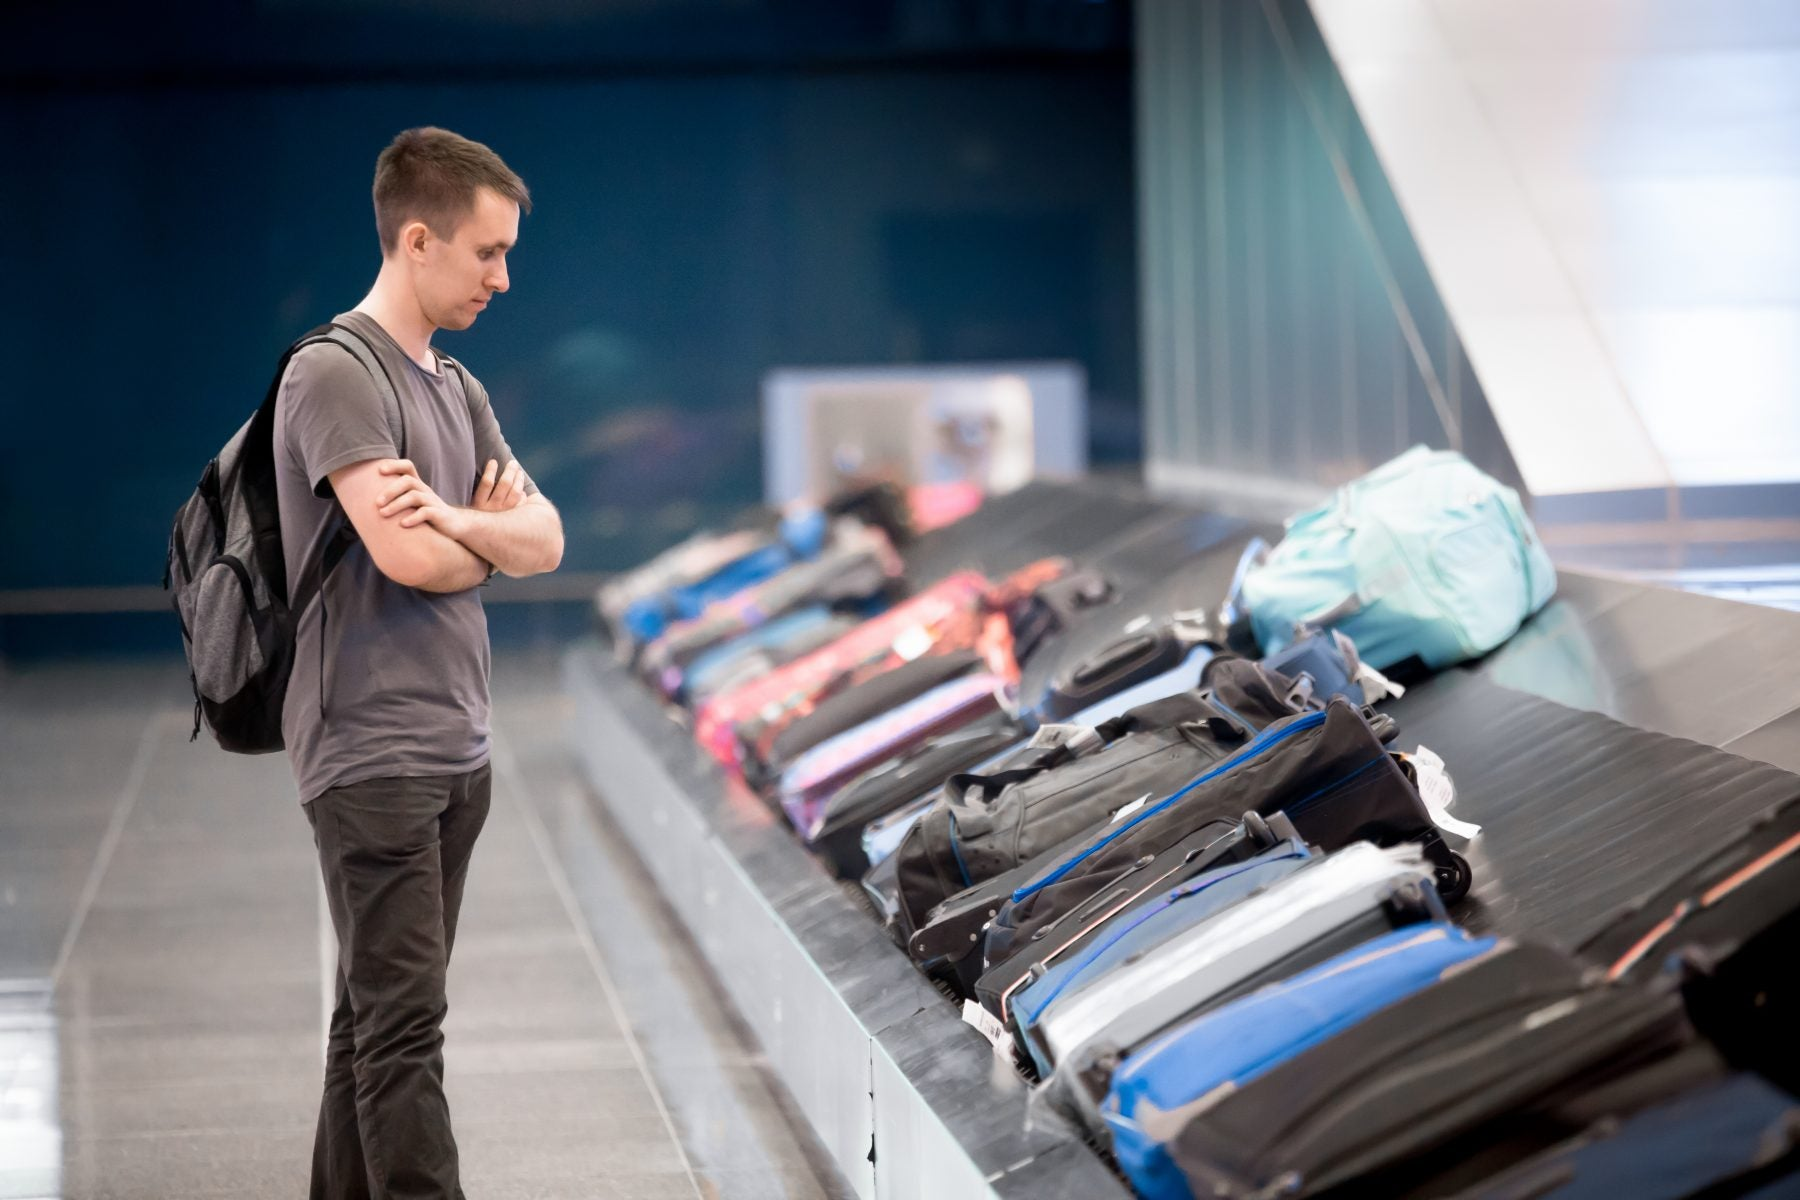 Lost or delayed baggage: Here's what to do